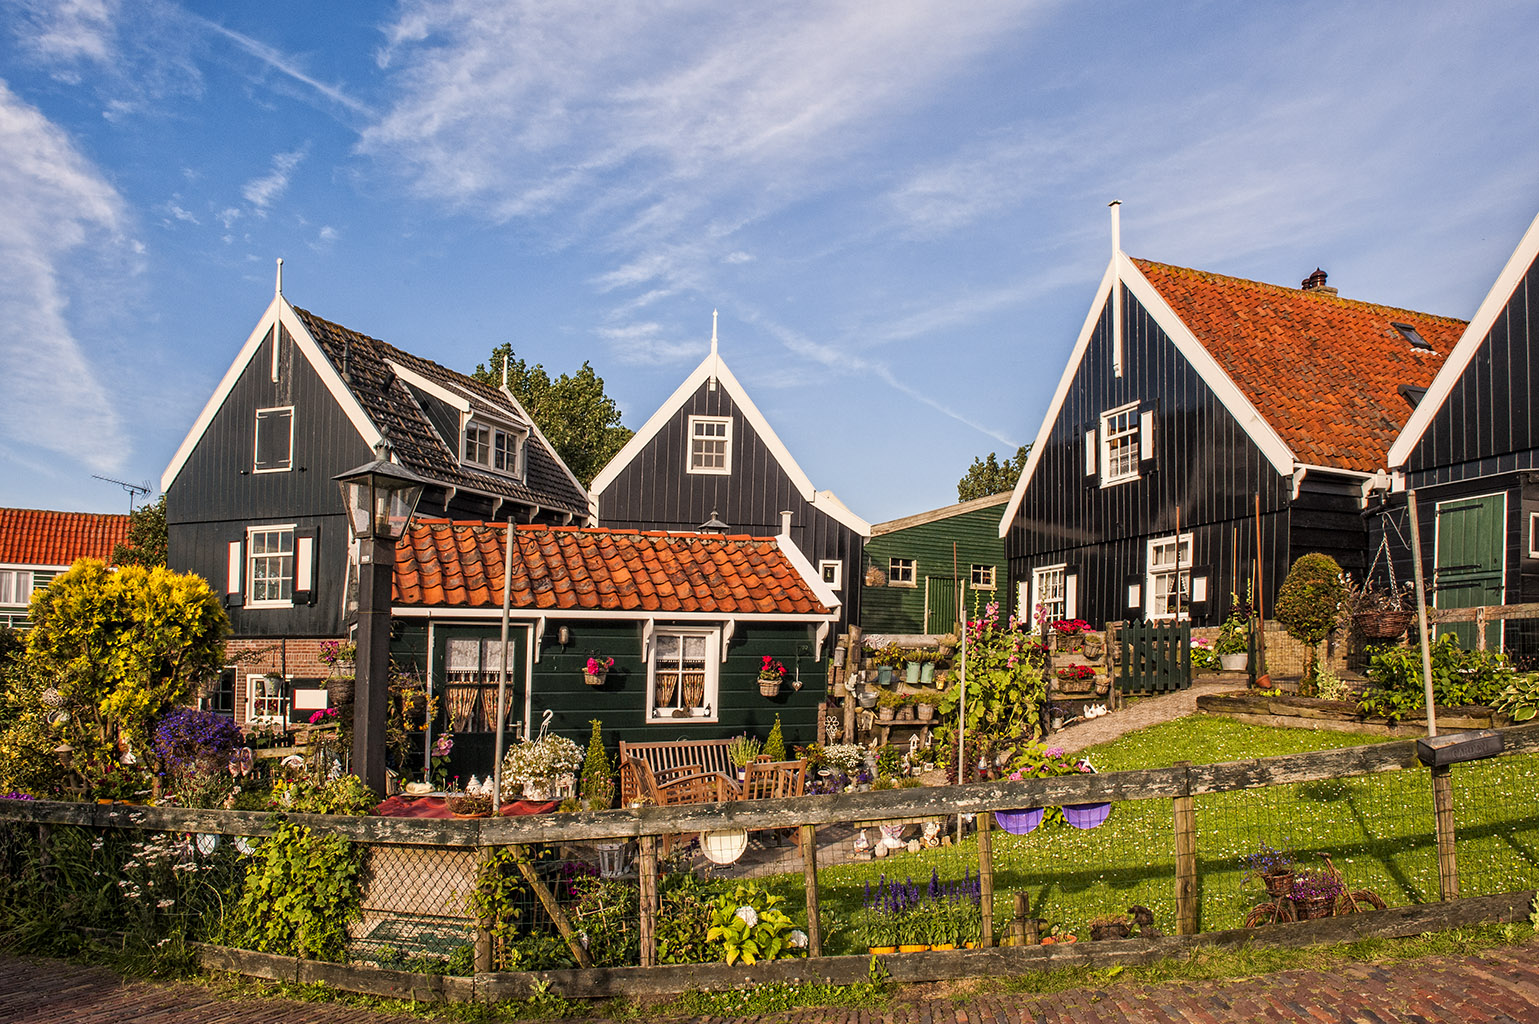 Marken, the Netherlands